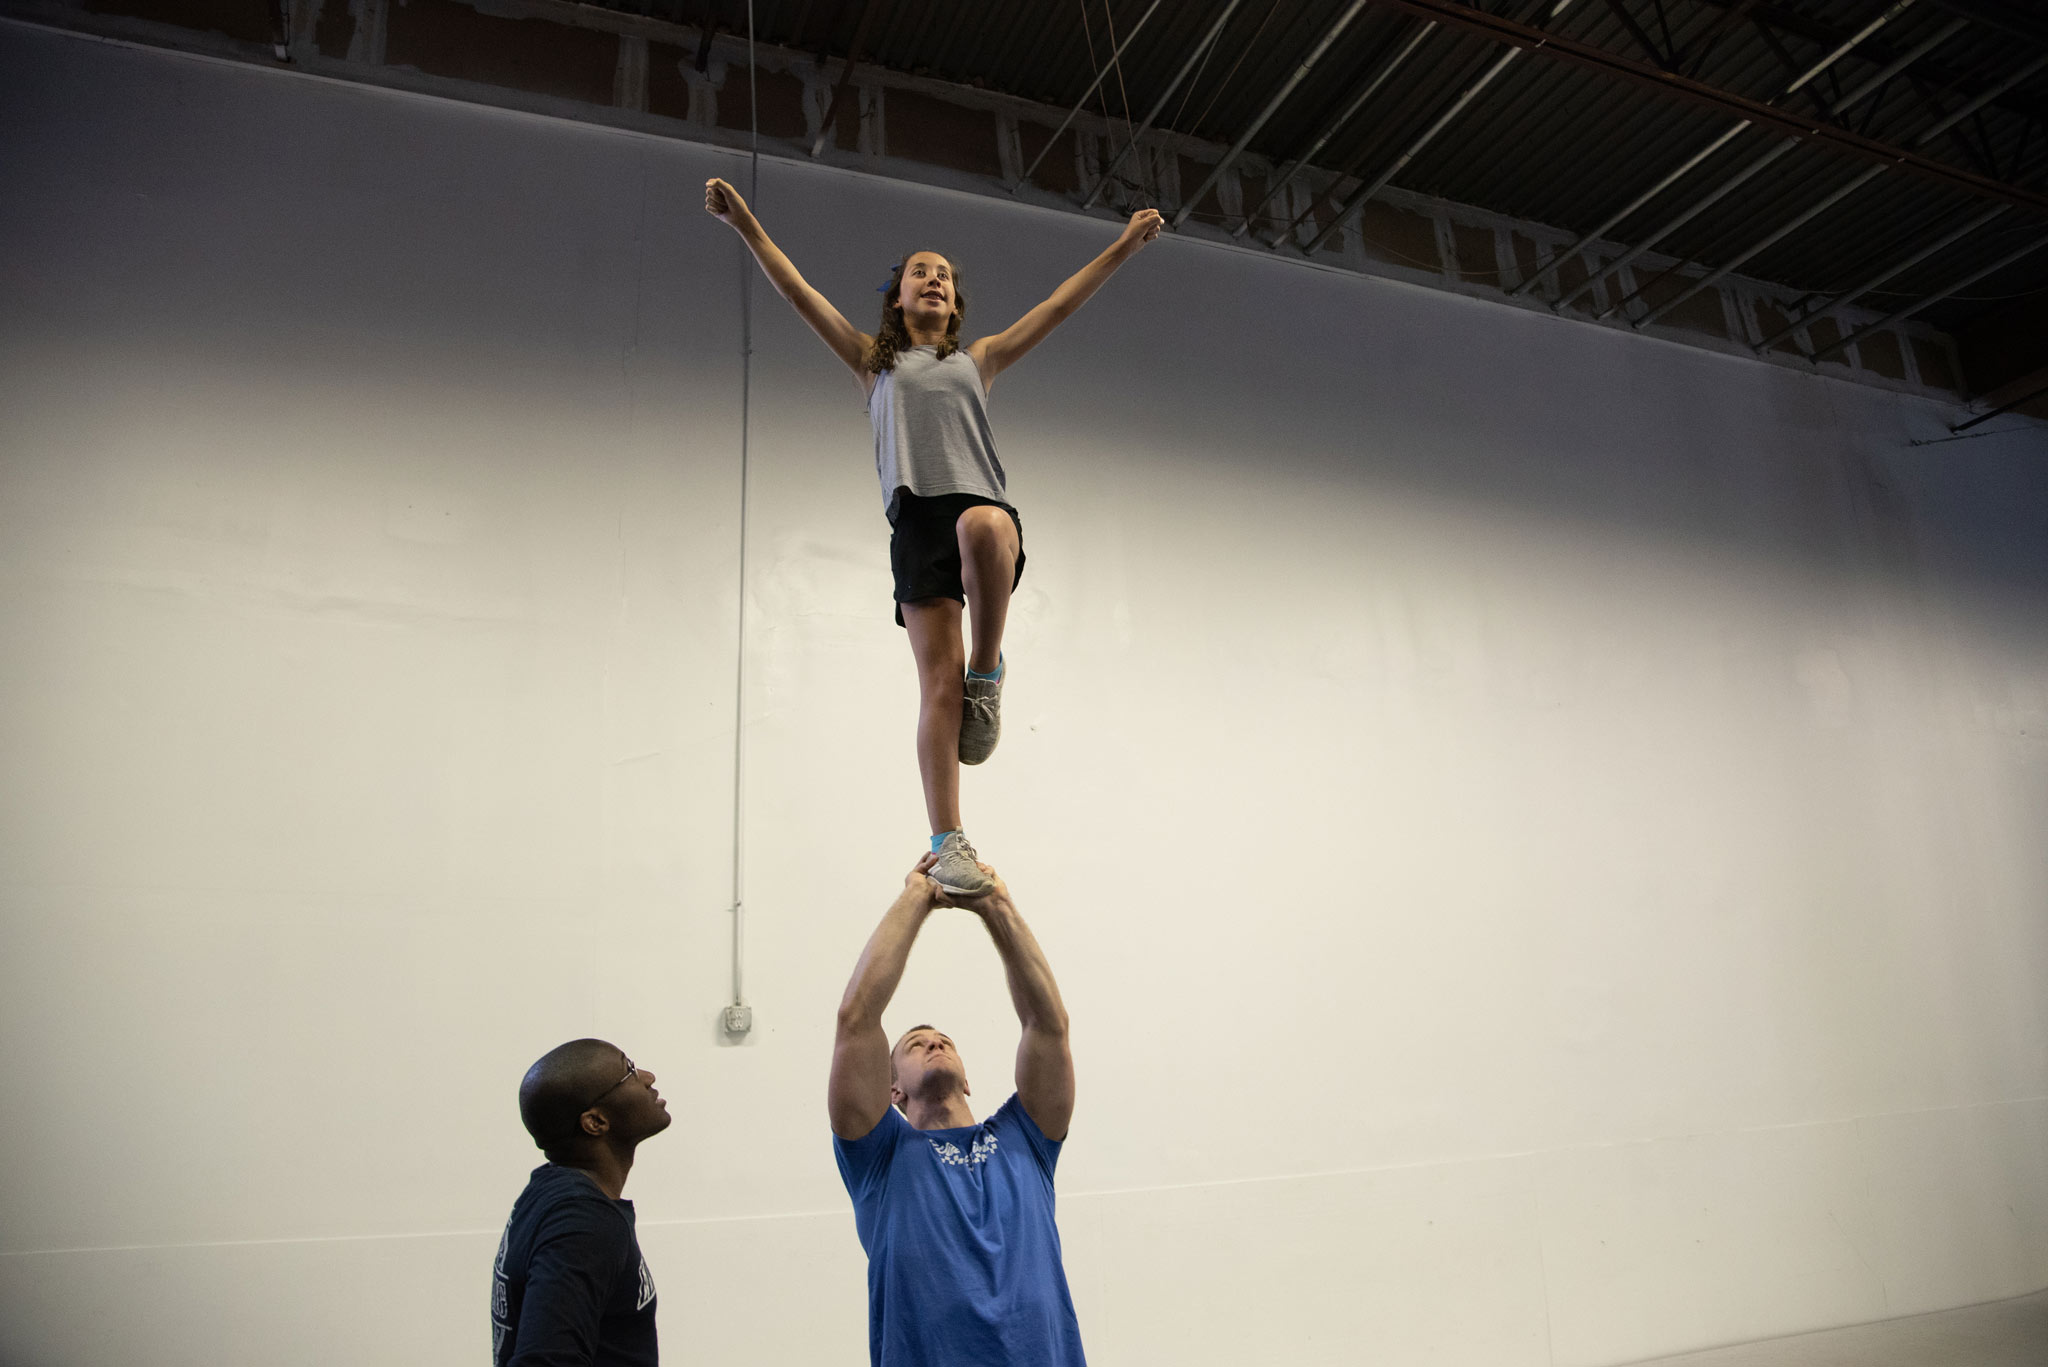 Gracie is lifted into the air by a young adult male practicing a cheerleading stunt. Her arms are raised and she is smiling.